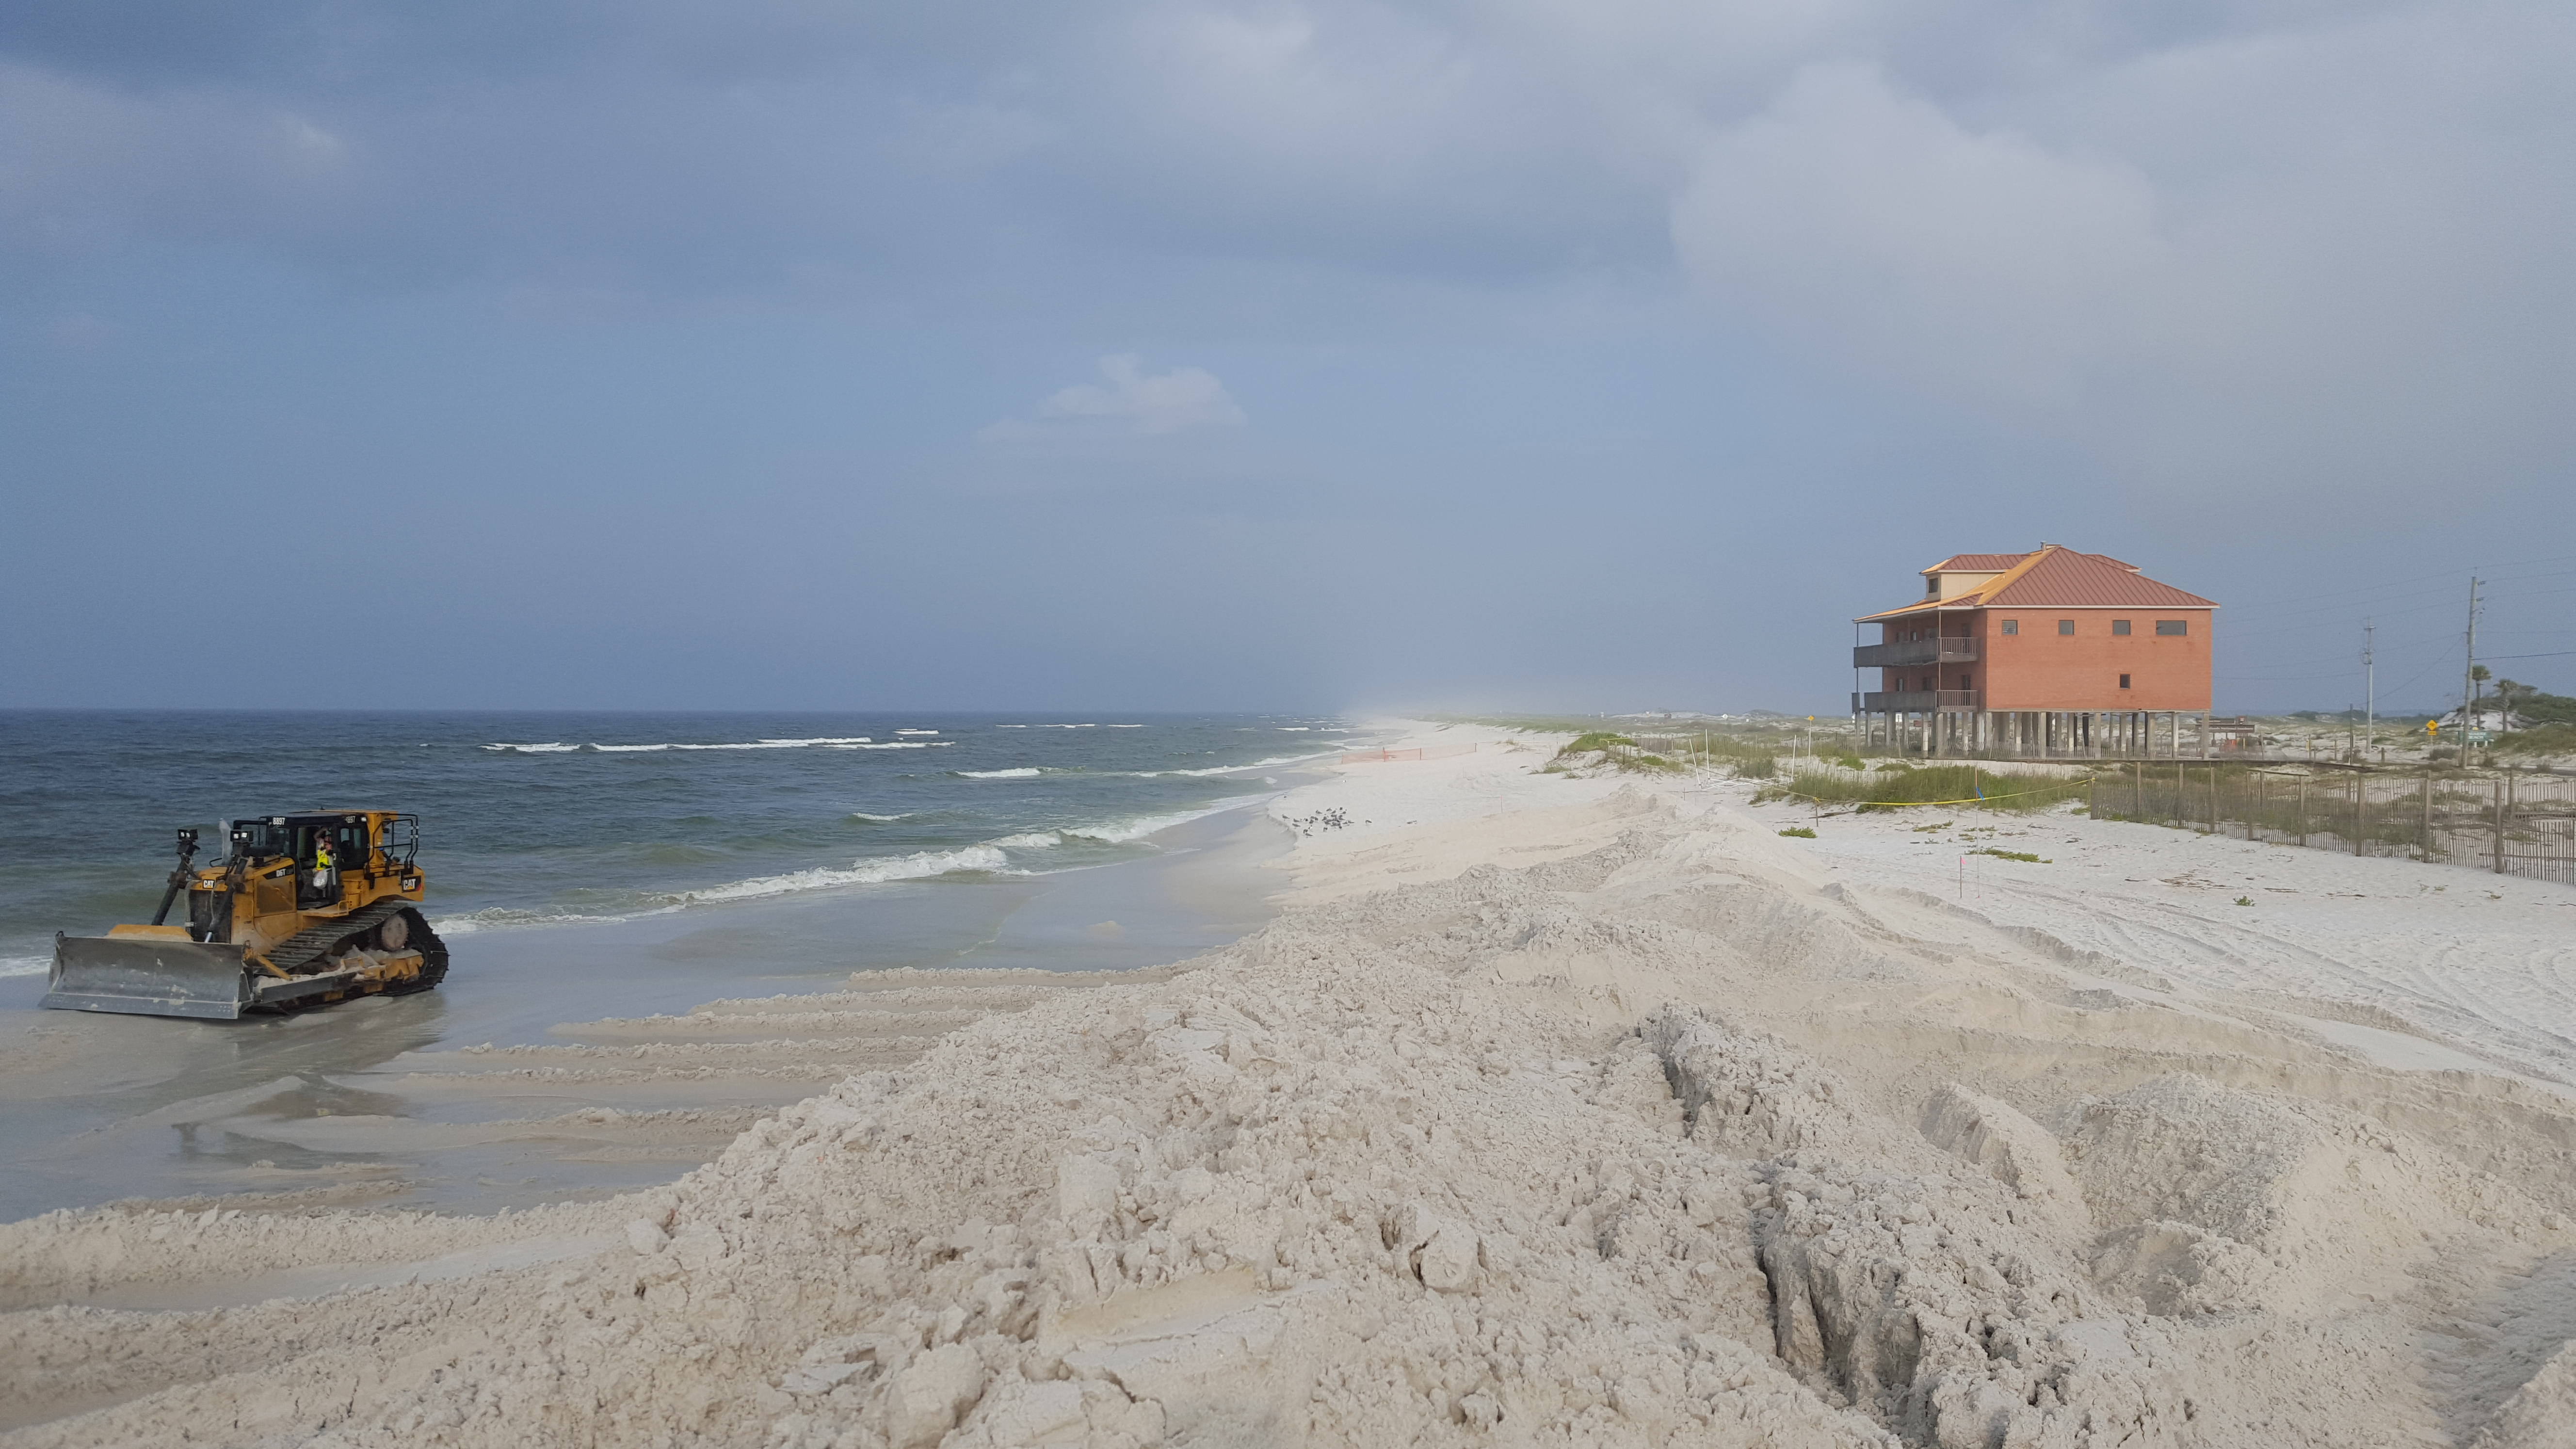 Dredging Operations Should Be Completed This Weekend The Final Area Is Being Competed At Time 7315 Gulf Blvd Or Near Western End